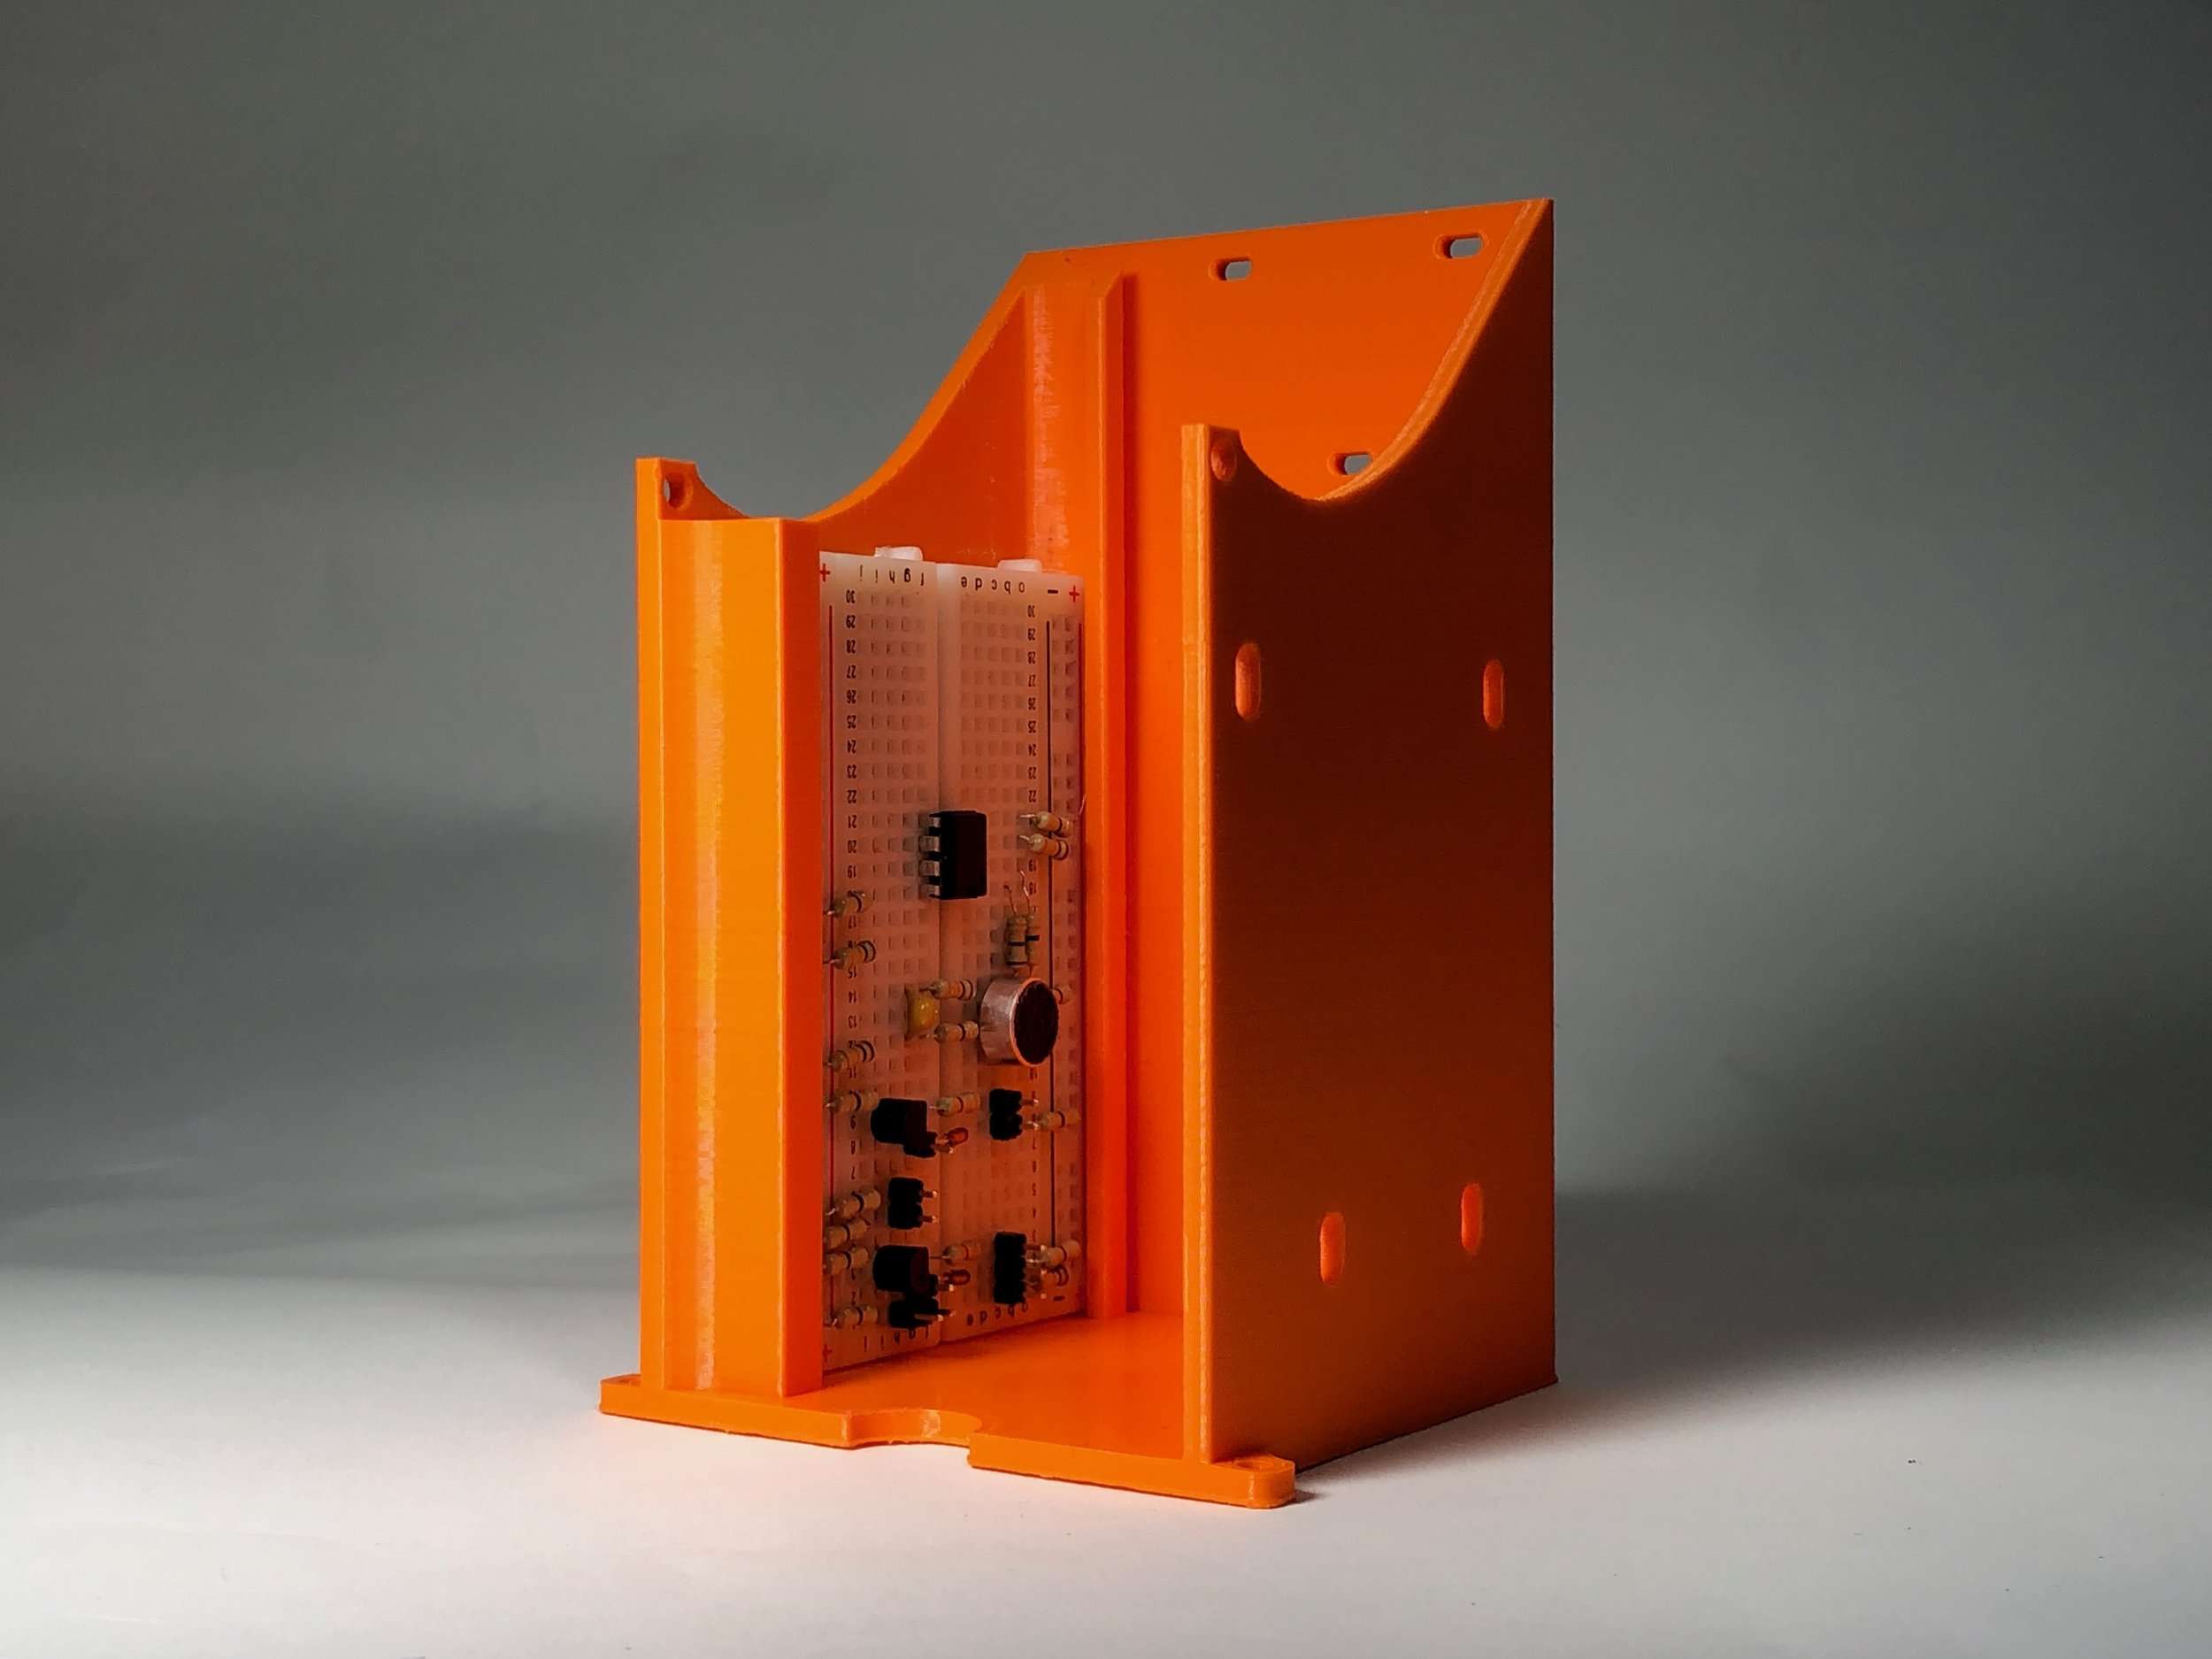 PLA - Simple. Brittle. Low Temperatures.A biodegradable thermoplastic. It has a heat deflection temperature of 40 degrees Celsius. PLA has a high stiffness and good detail. It is by far the most affordable 3D print material.